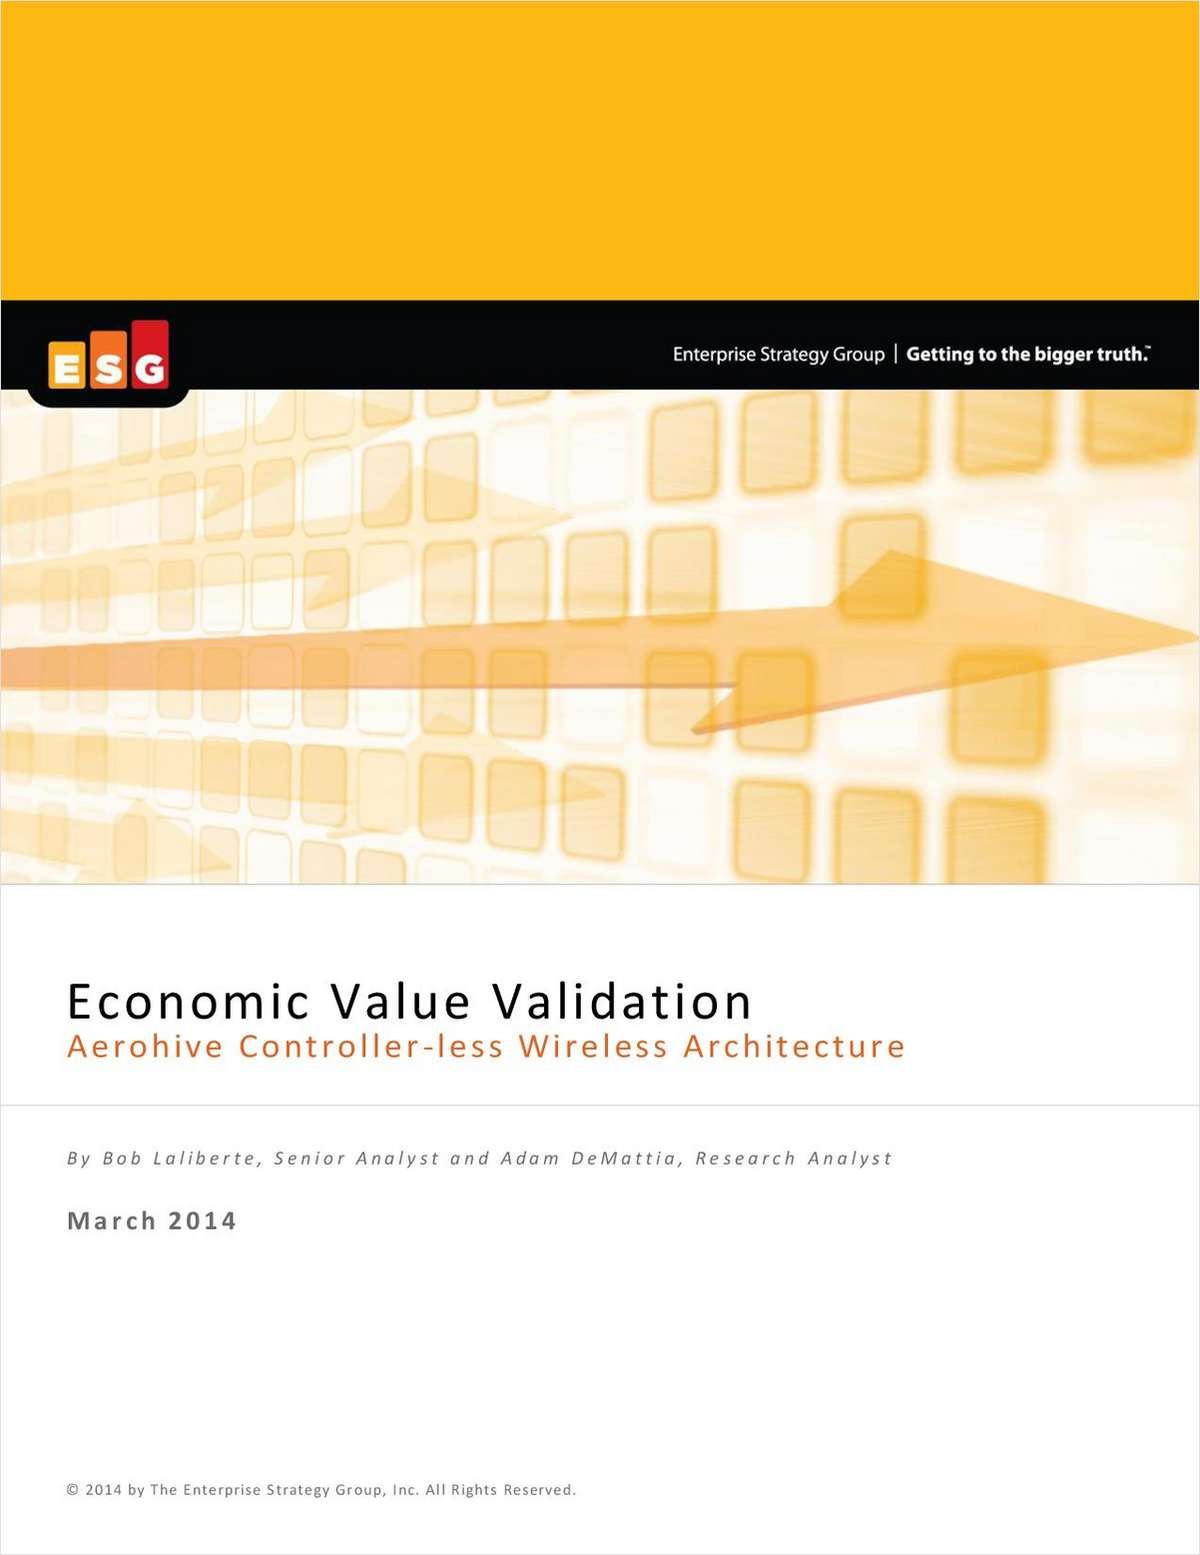 Economic Value Validation; Aerohive Controller-less Wireless Architecture